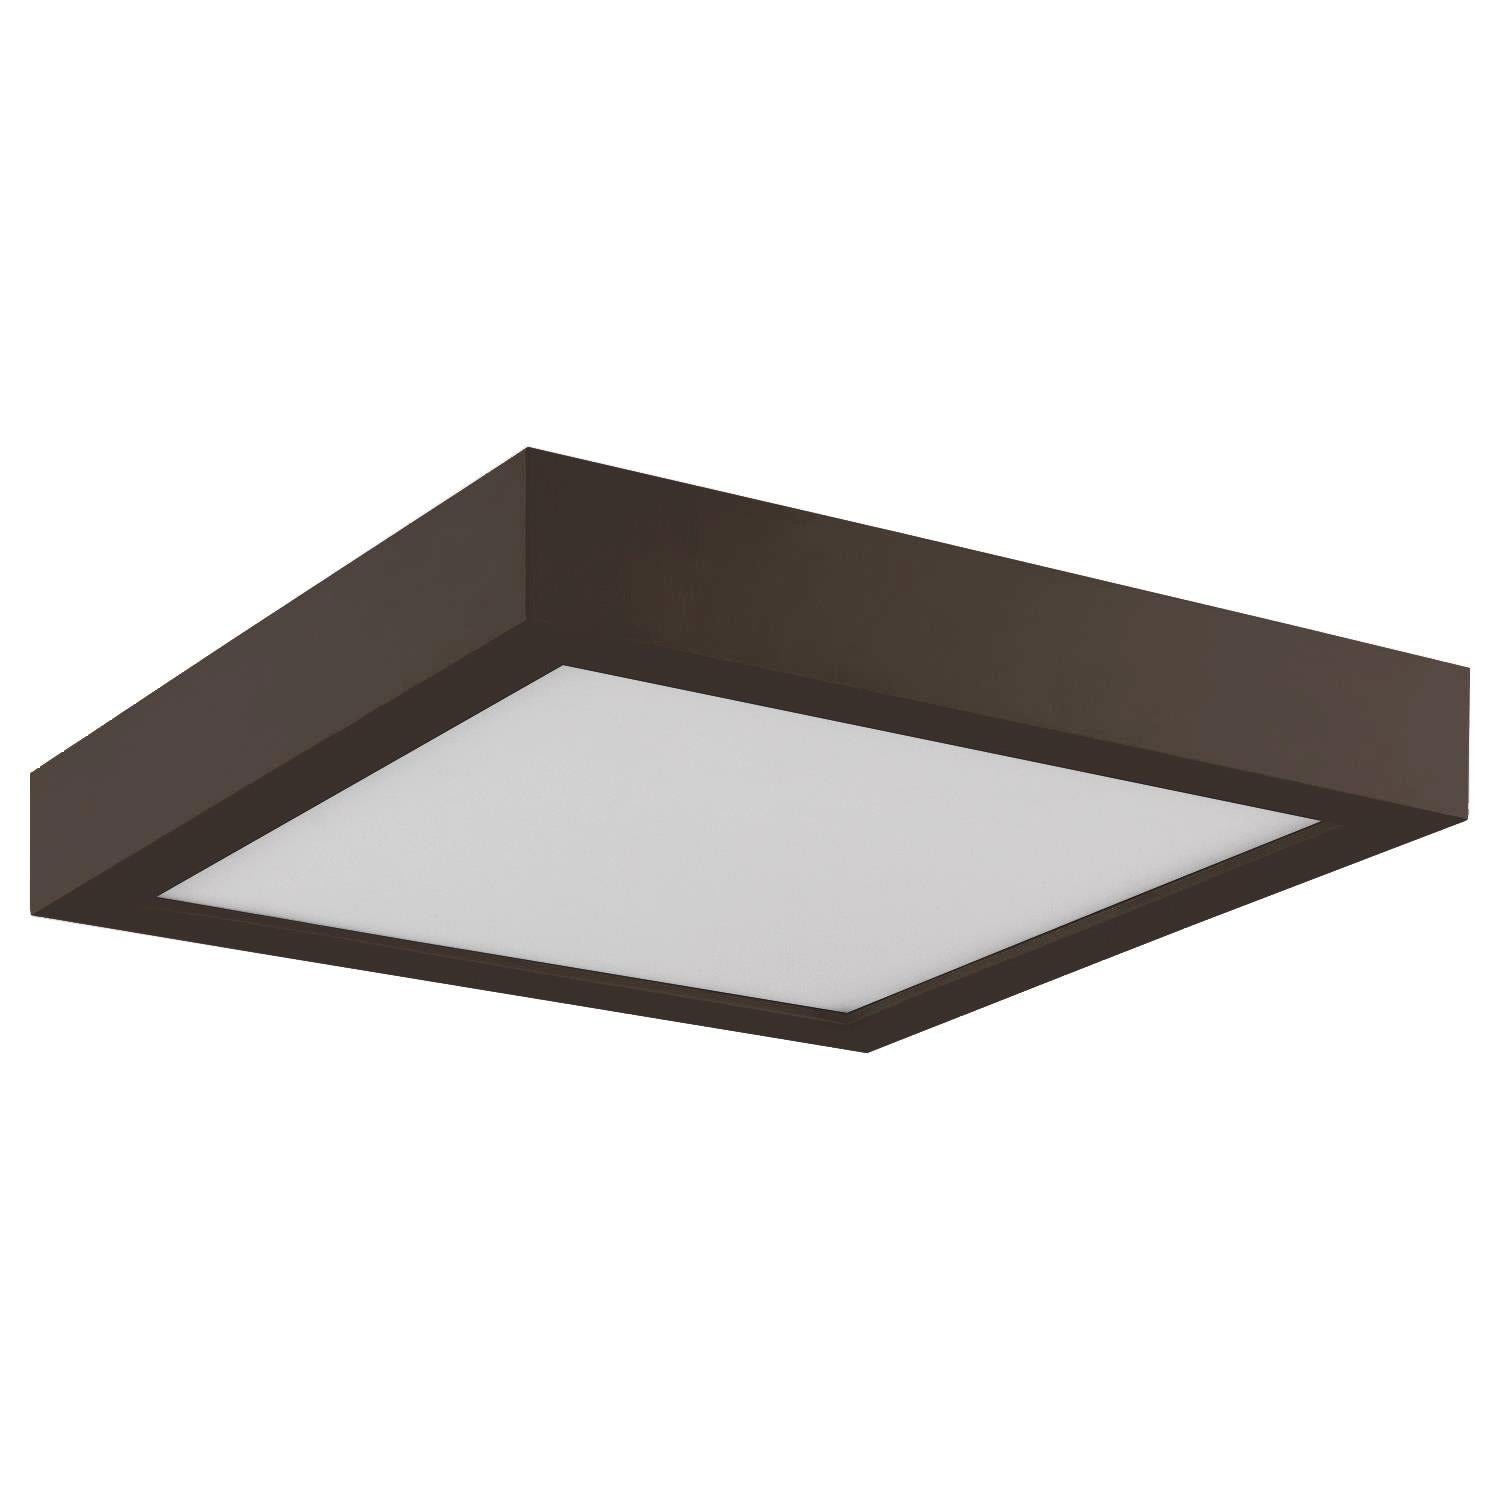 Sunlite 5.5in. Square LED Mini Flat Panel Fixture, 4000K - Cool White, Bronze Finish